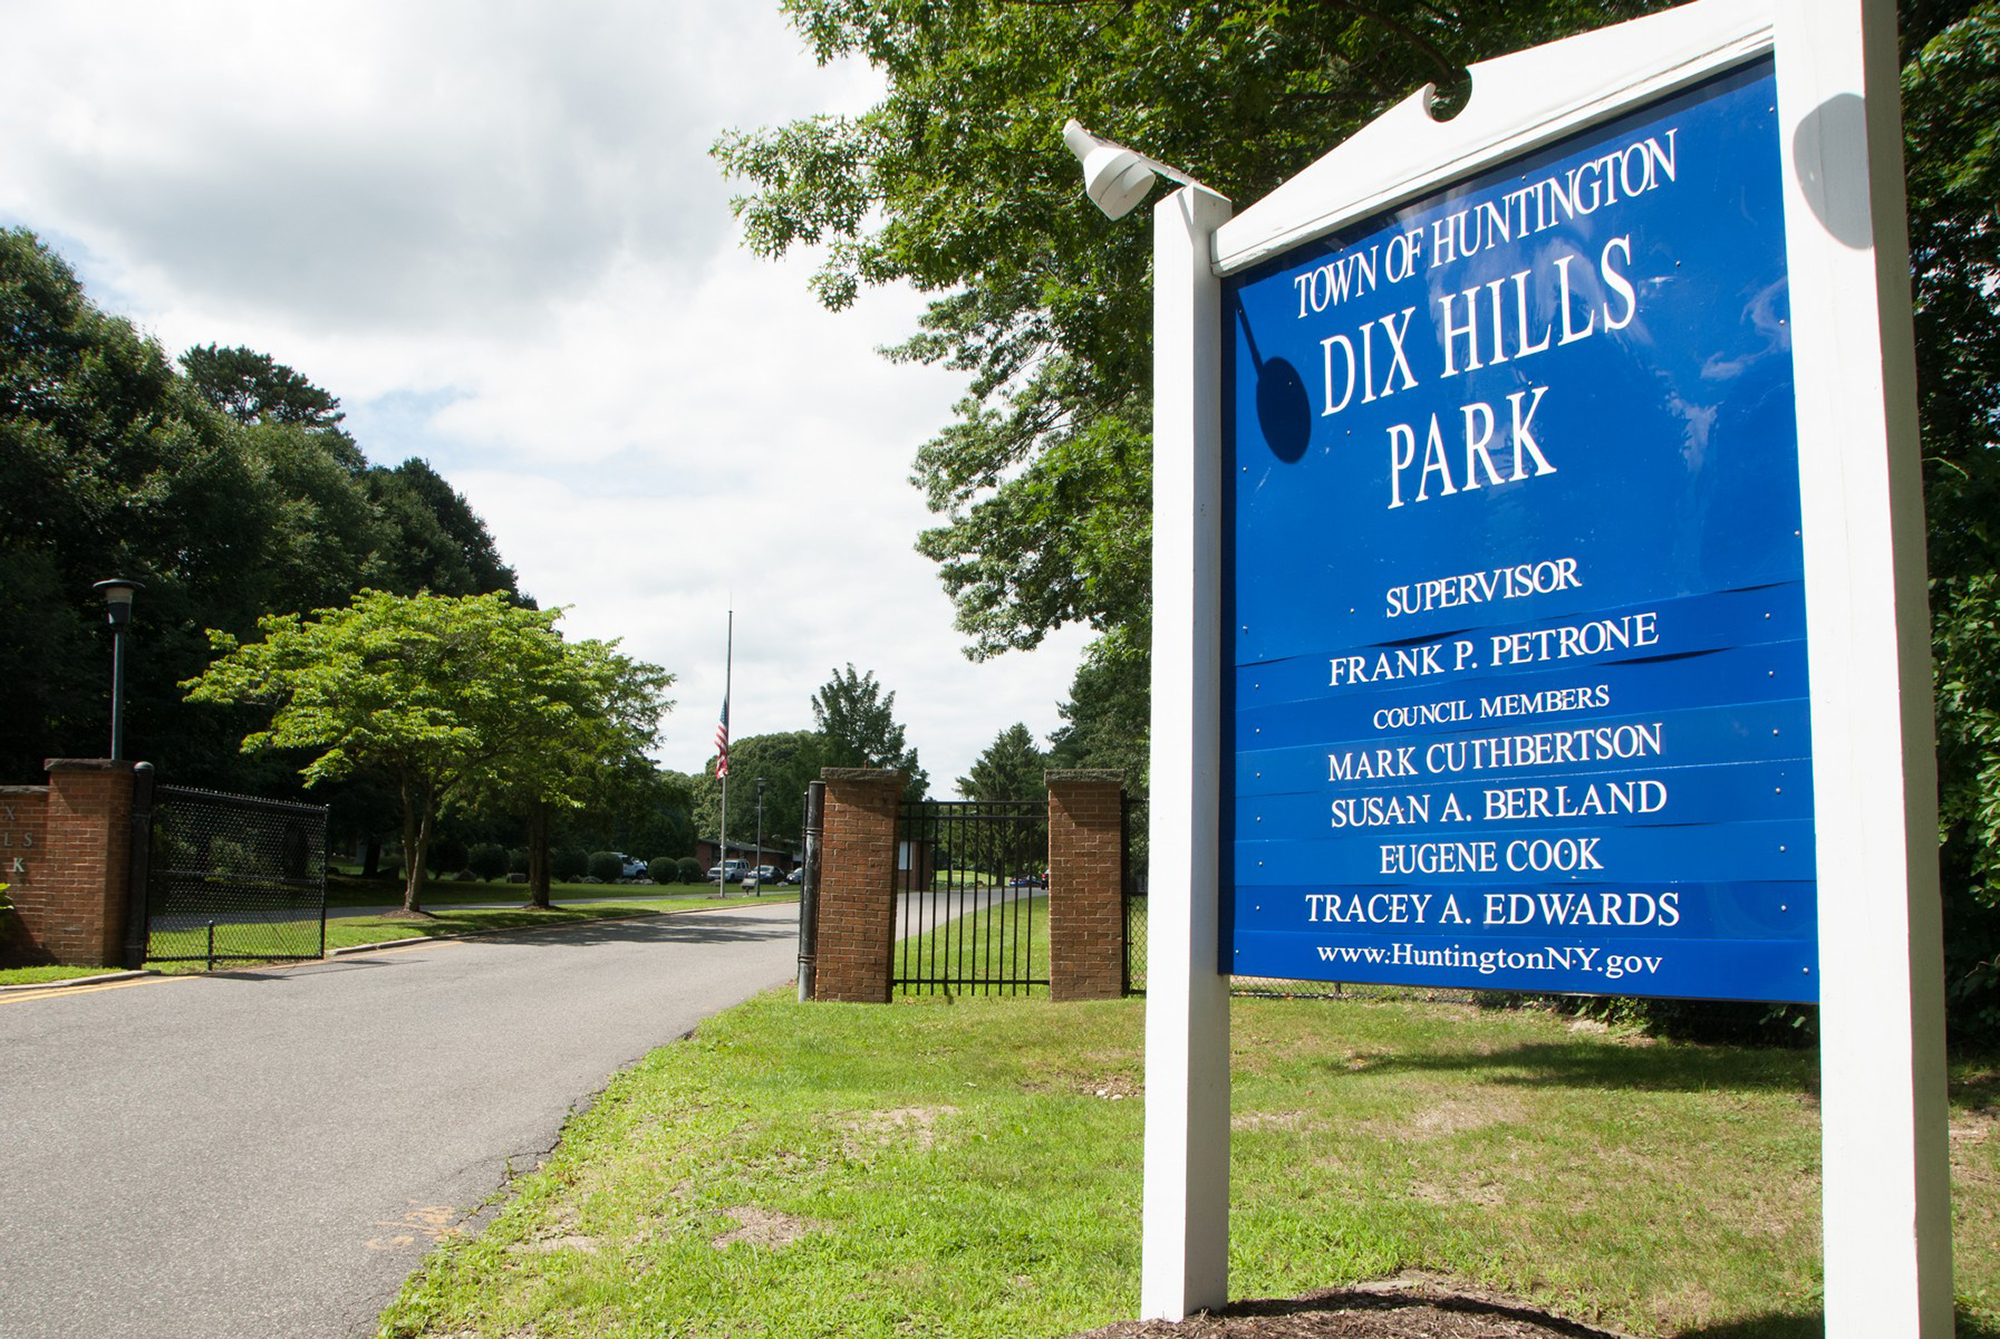 Dix Hills Recreation